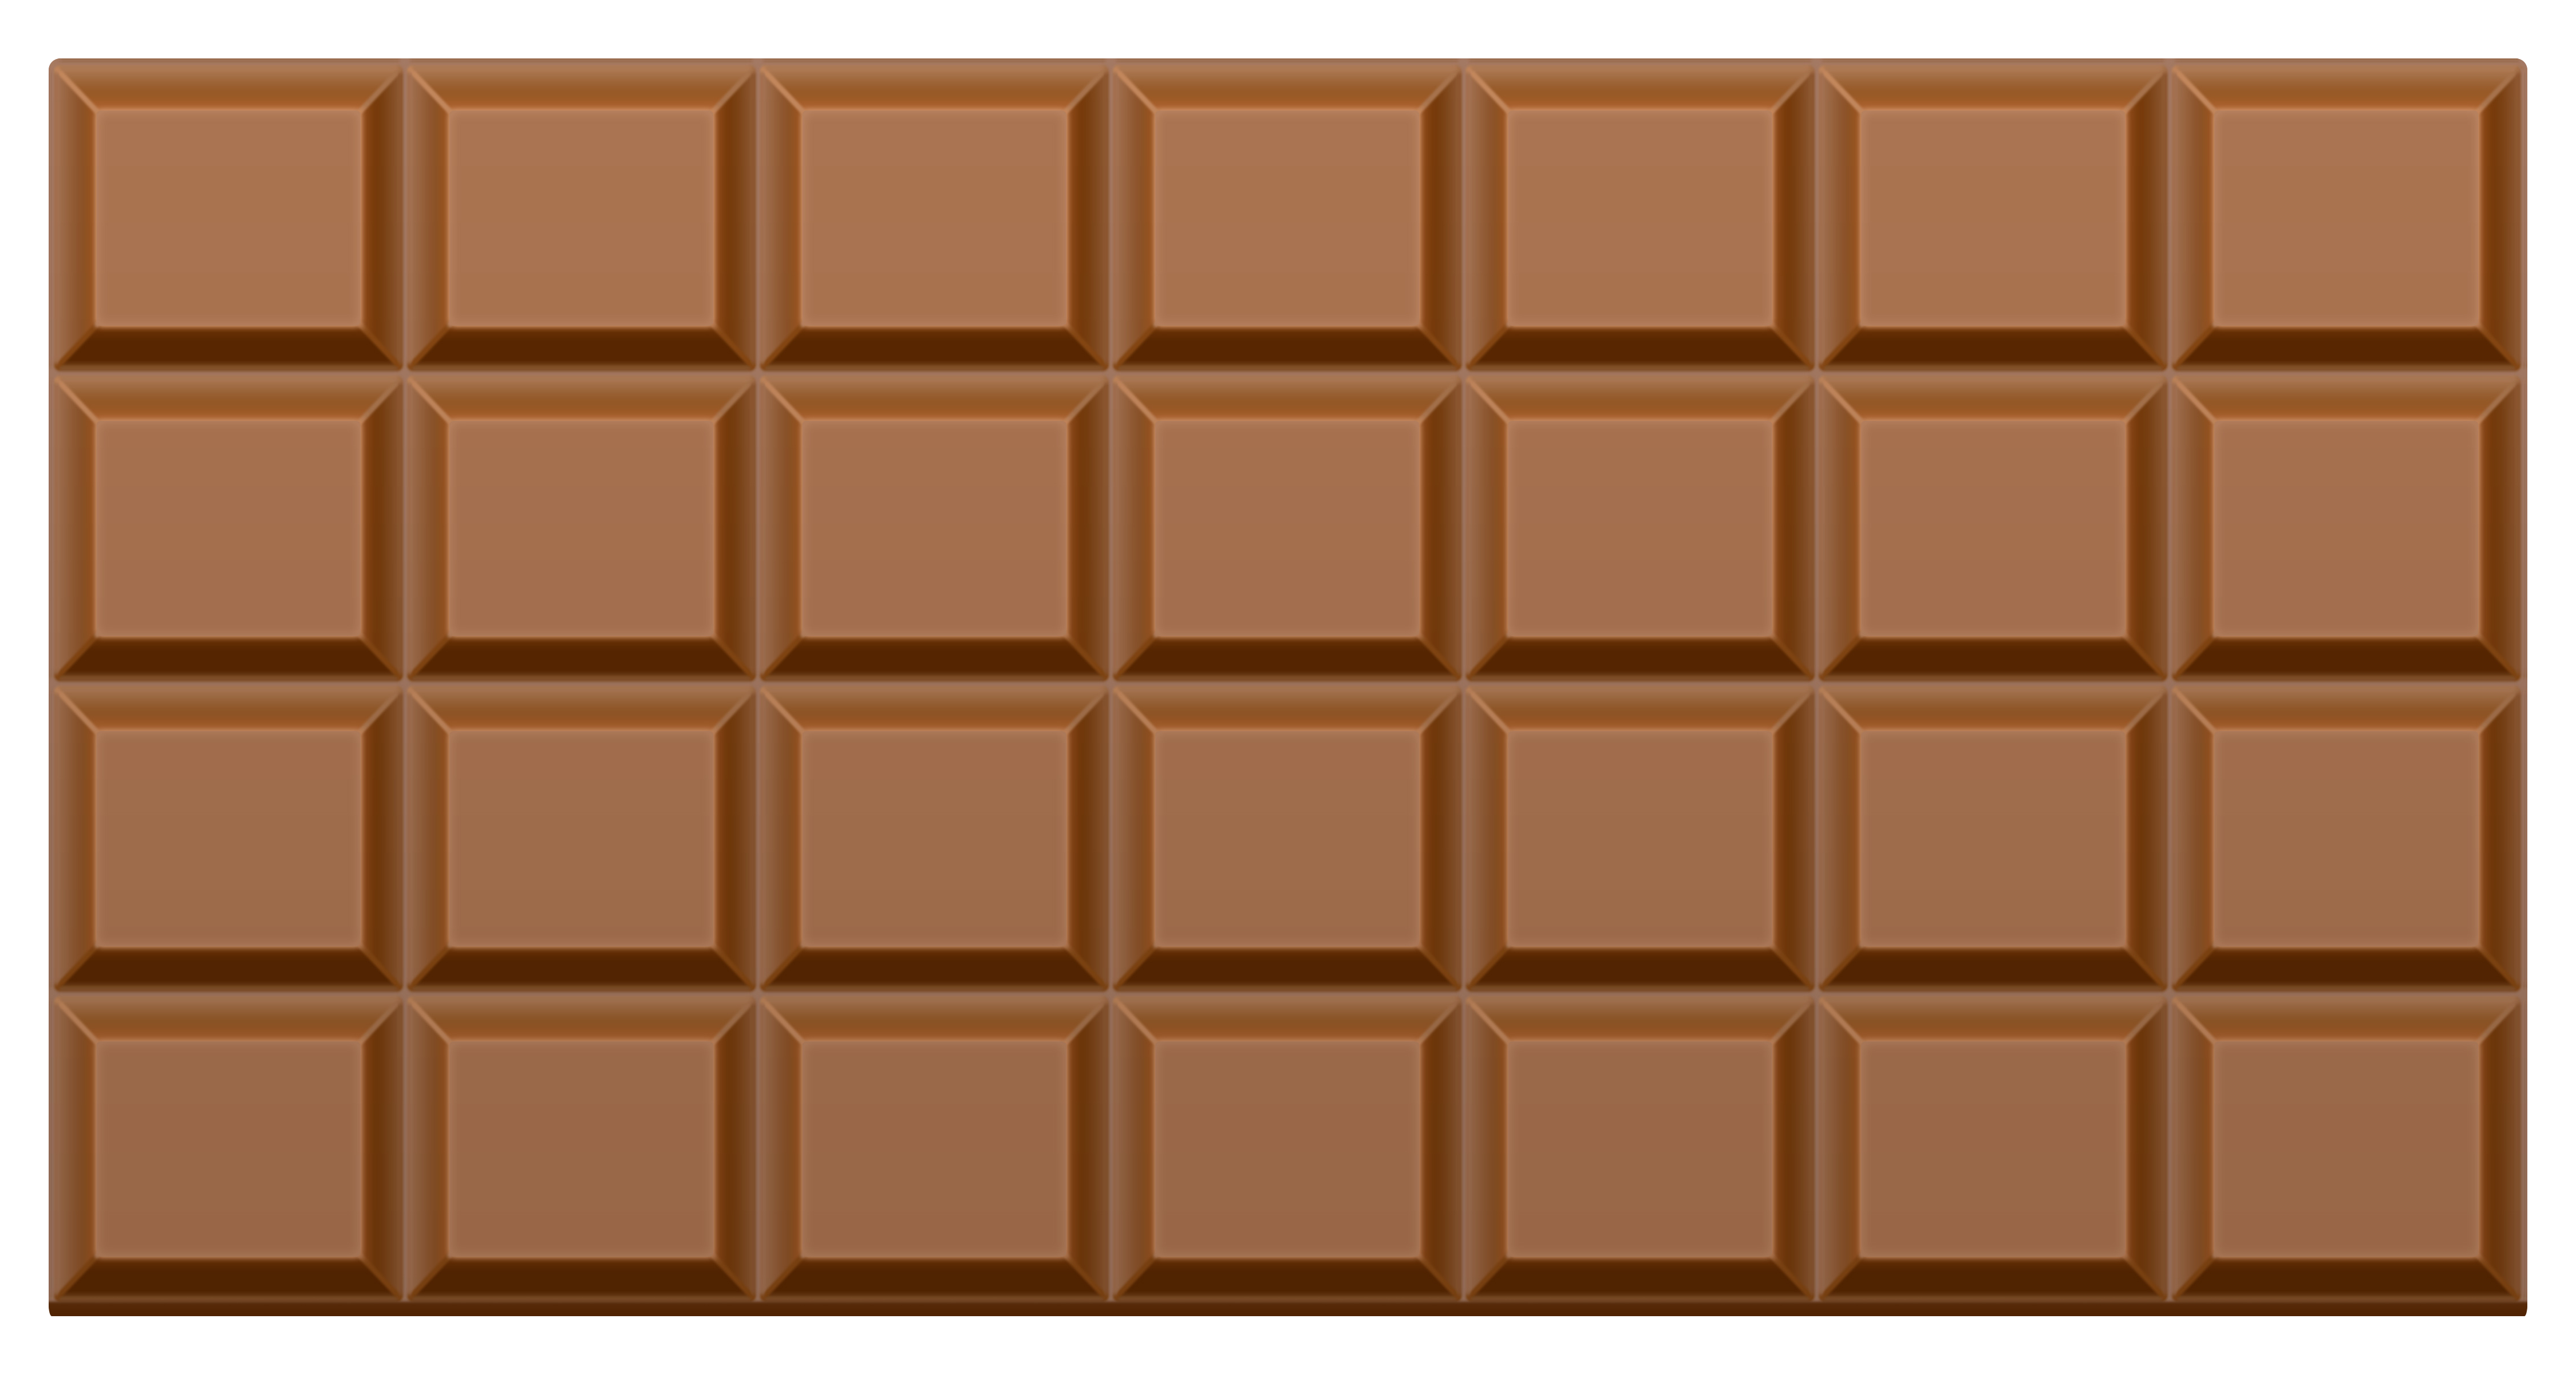 Free Chocolate Clipart, Download Free Clip Art, Free Clip.